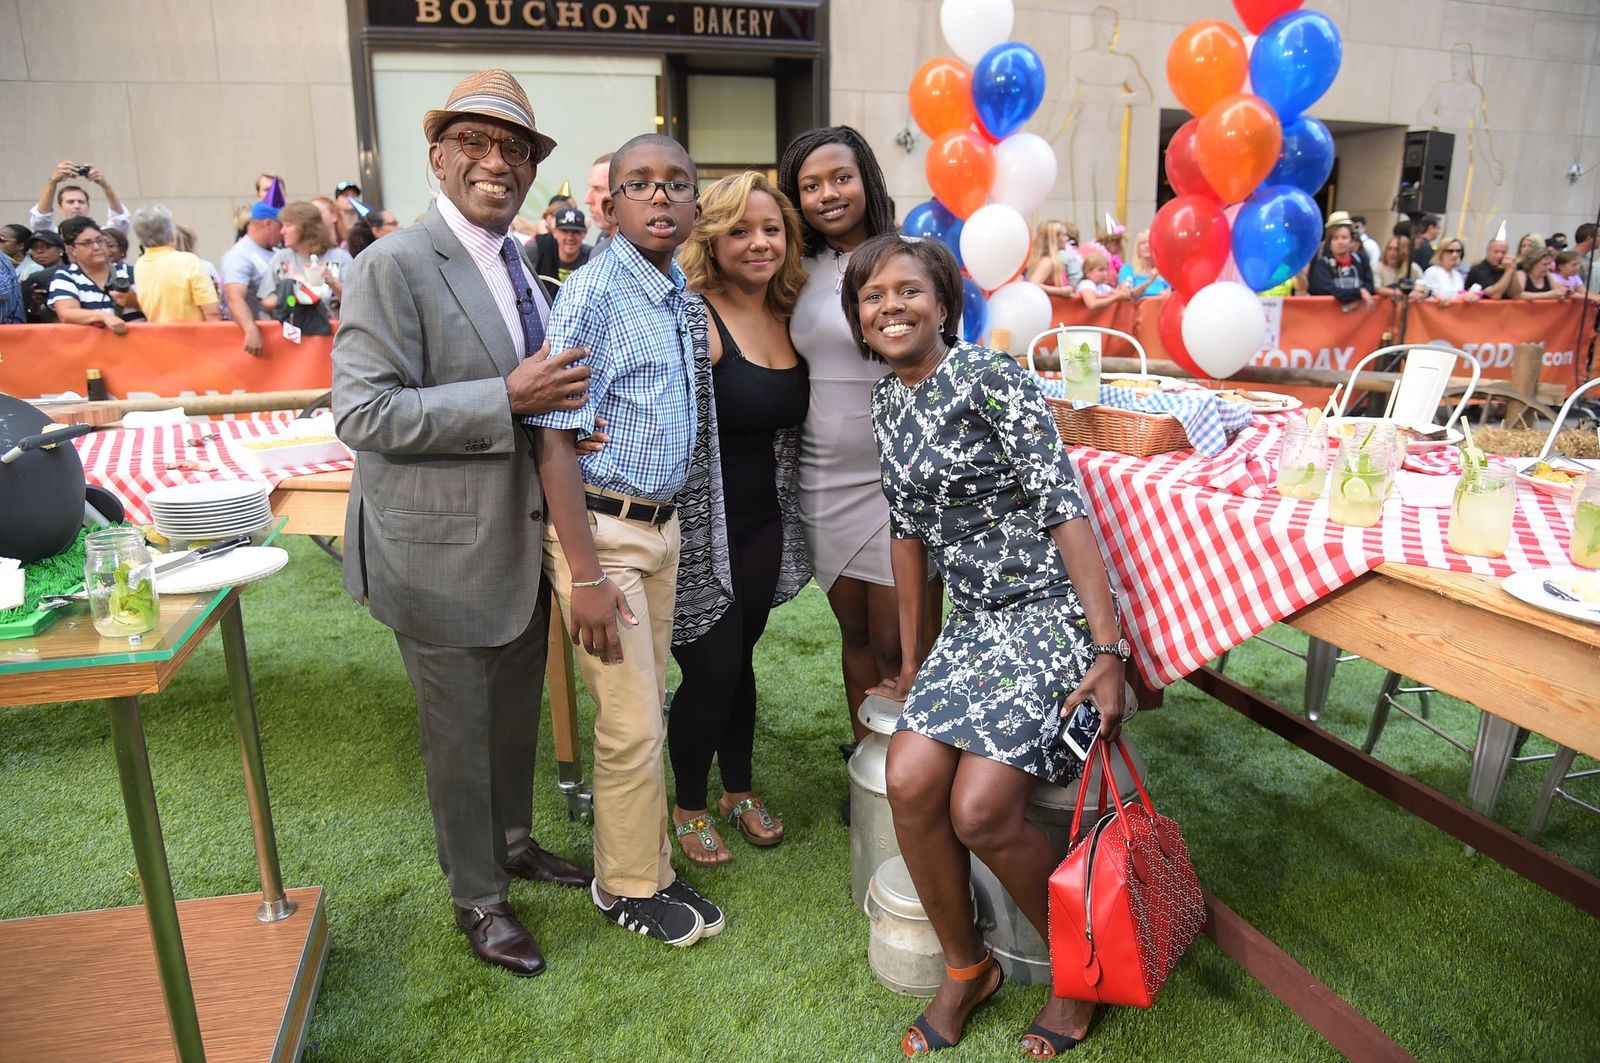 """Al Roker and his Family on the """"Today"""" show on August 20, 2014  Photo: Michael Loccisano/NBC/NBC Newswire/NBCUniversal/Getty Images"""